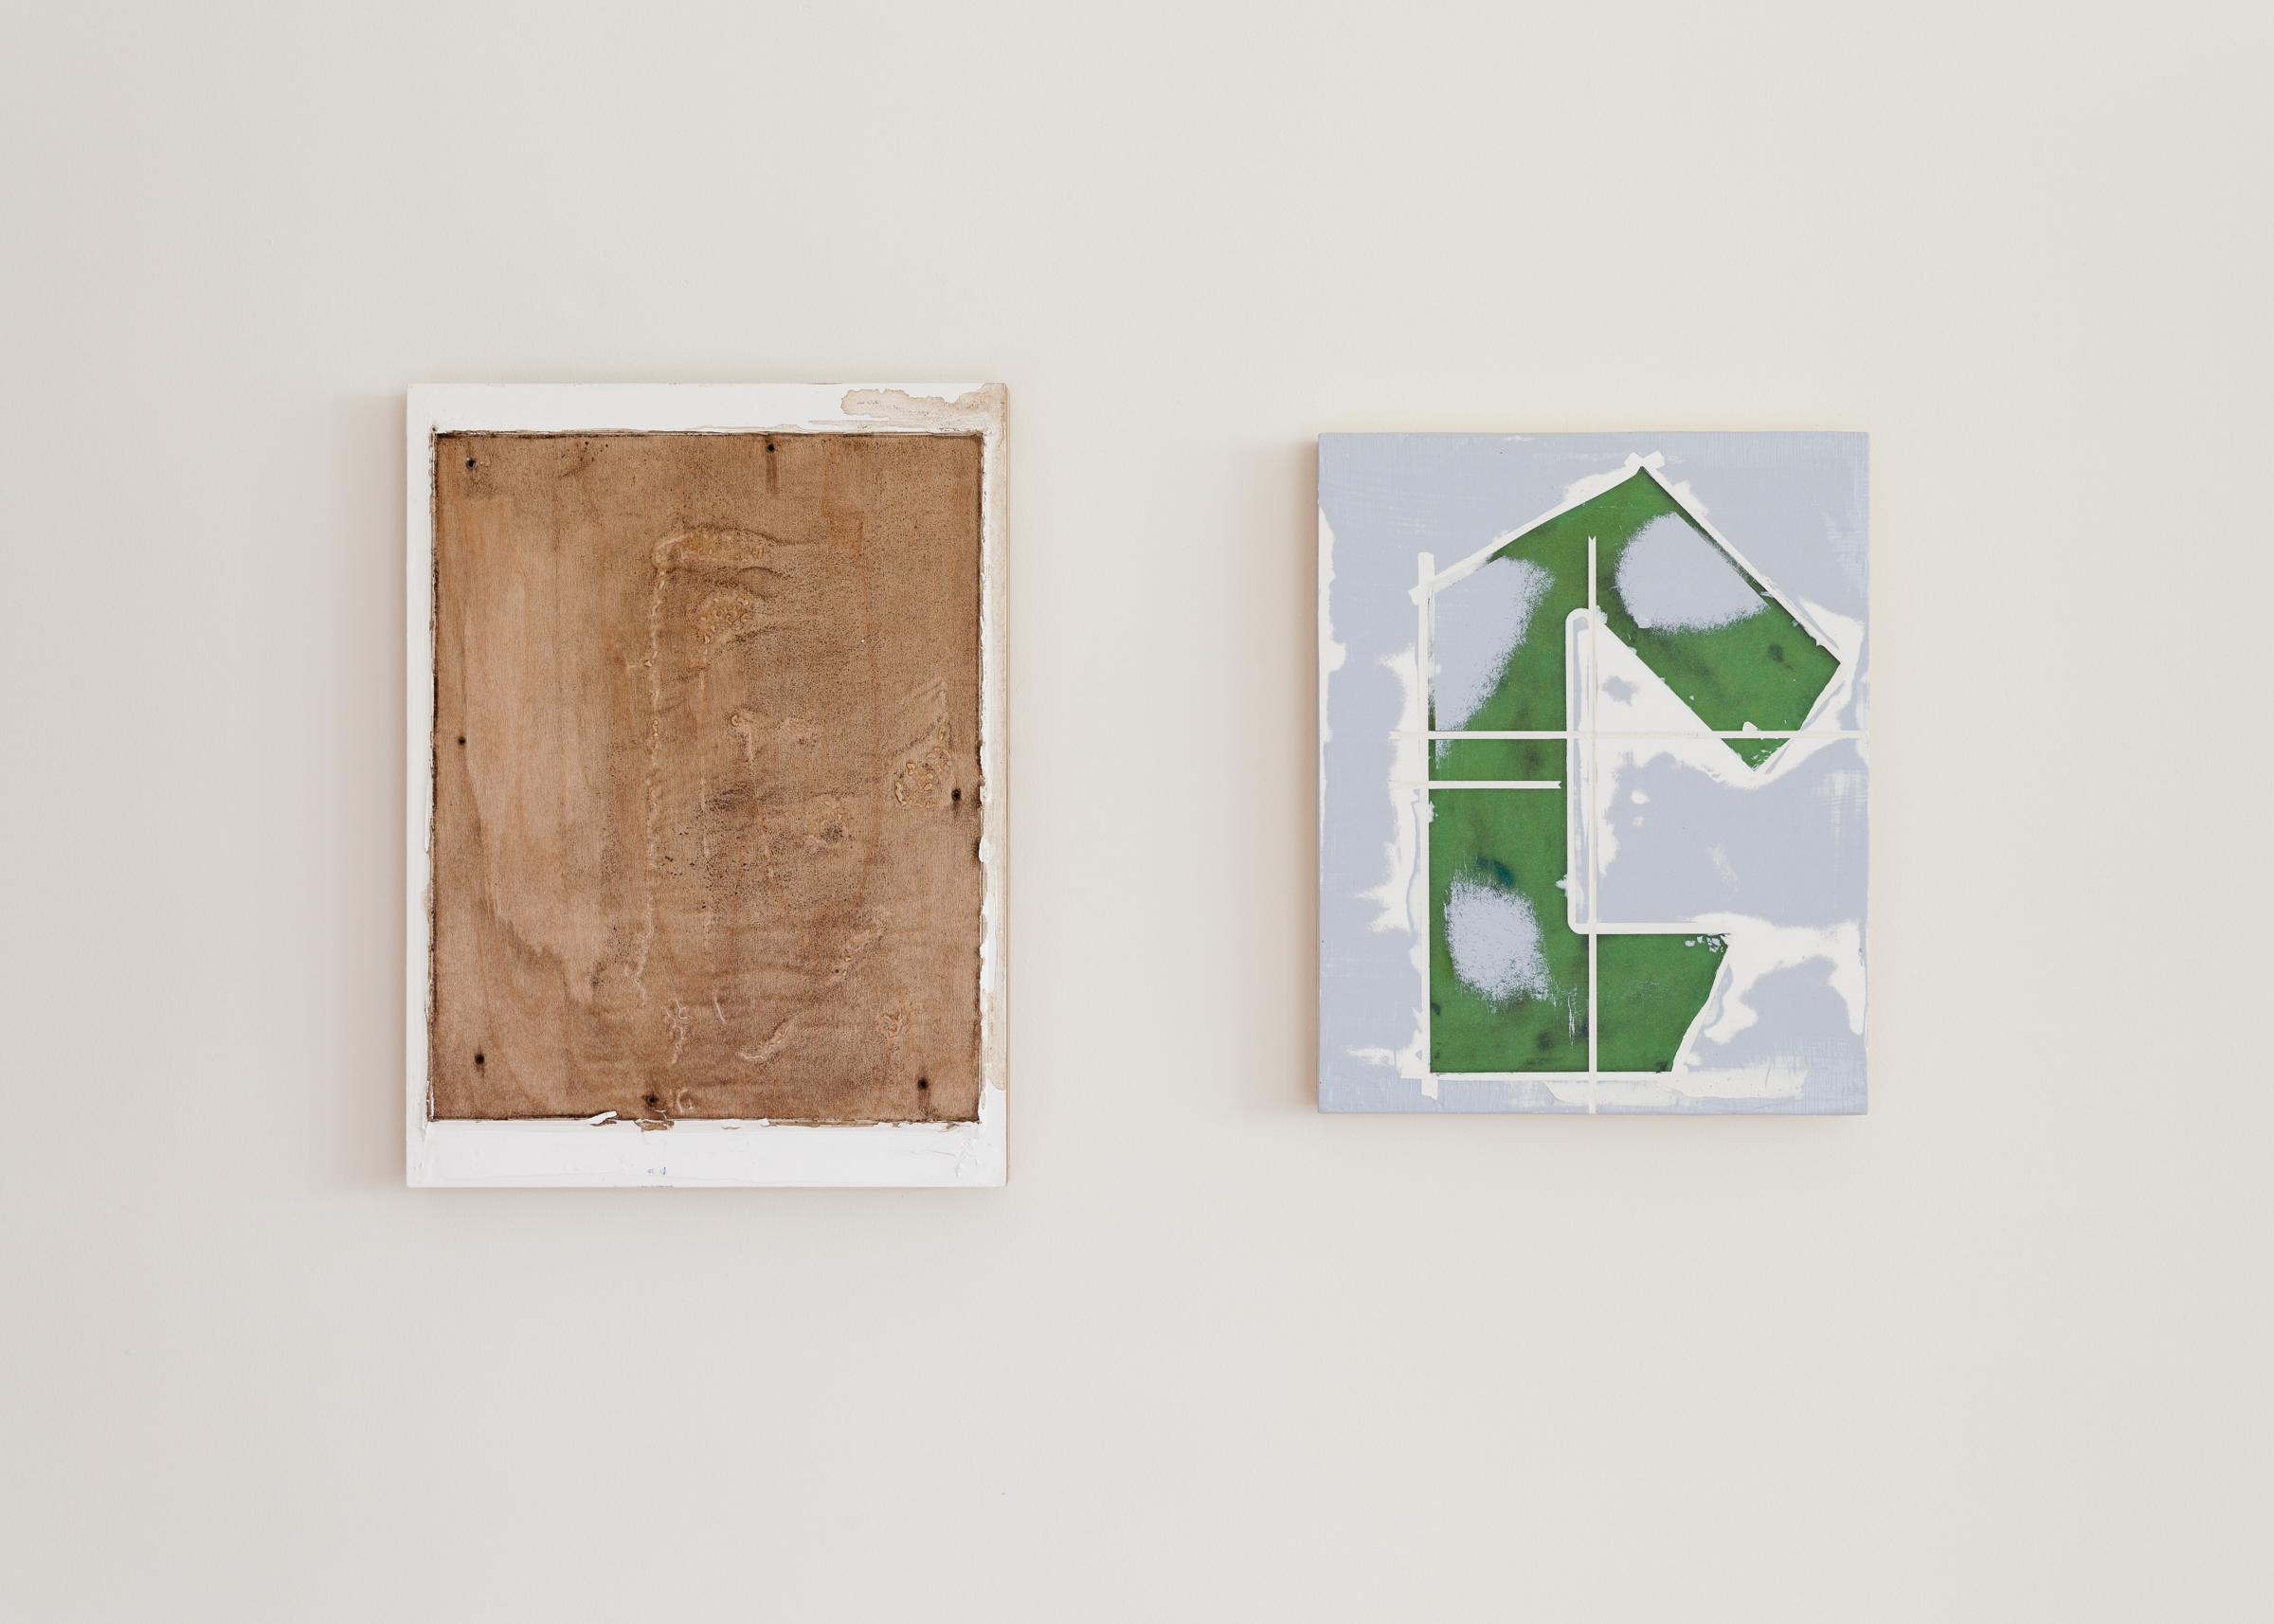 Installation view, LAT. 41° 7' N., LONG. 72° 19' W ,Martos Gallery, East Marion, NY, 2013